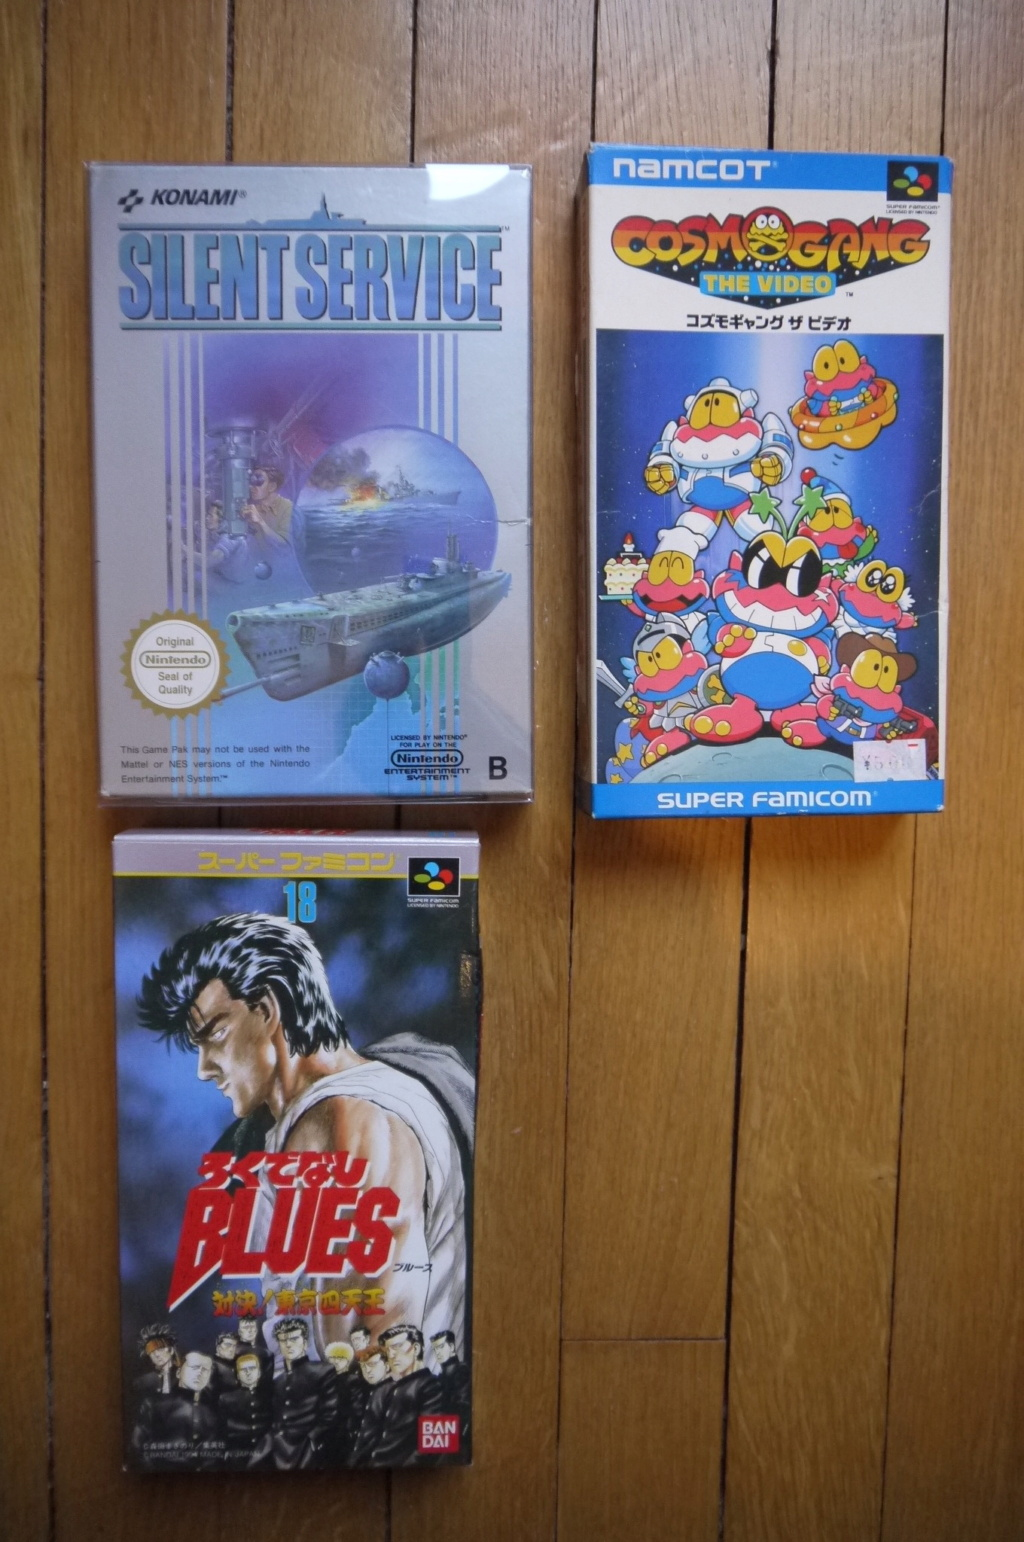 [VDS/ECH] Deja Vu, Tennis et Super Mario small box NES, jeux SFC, GB, DS, notices P1110512